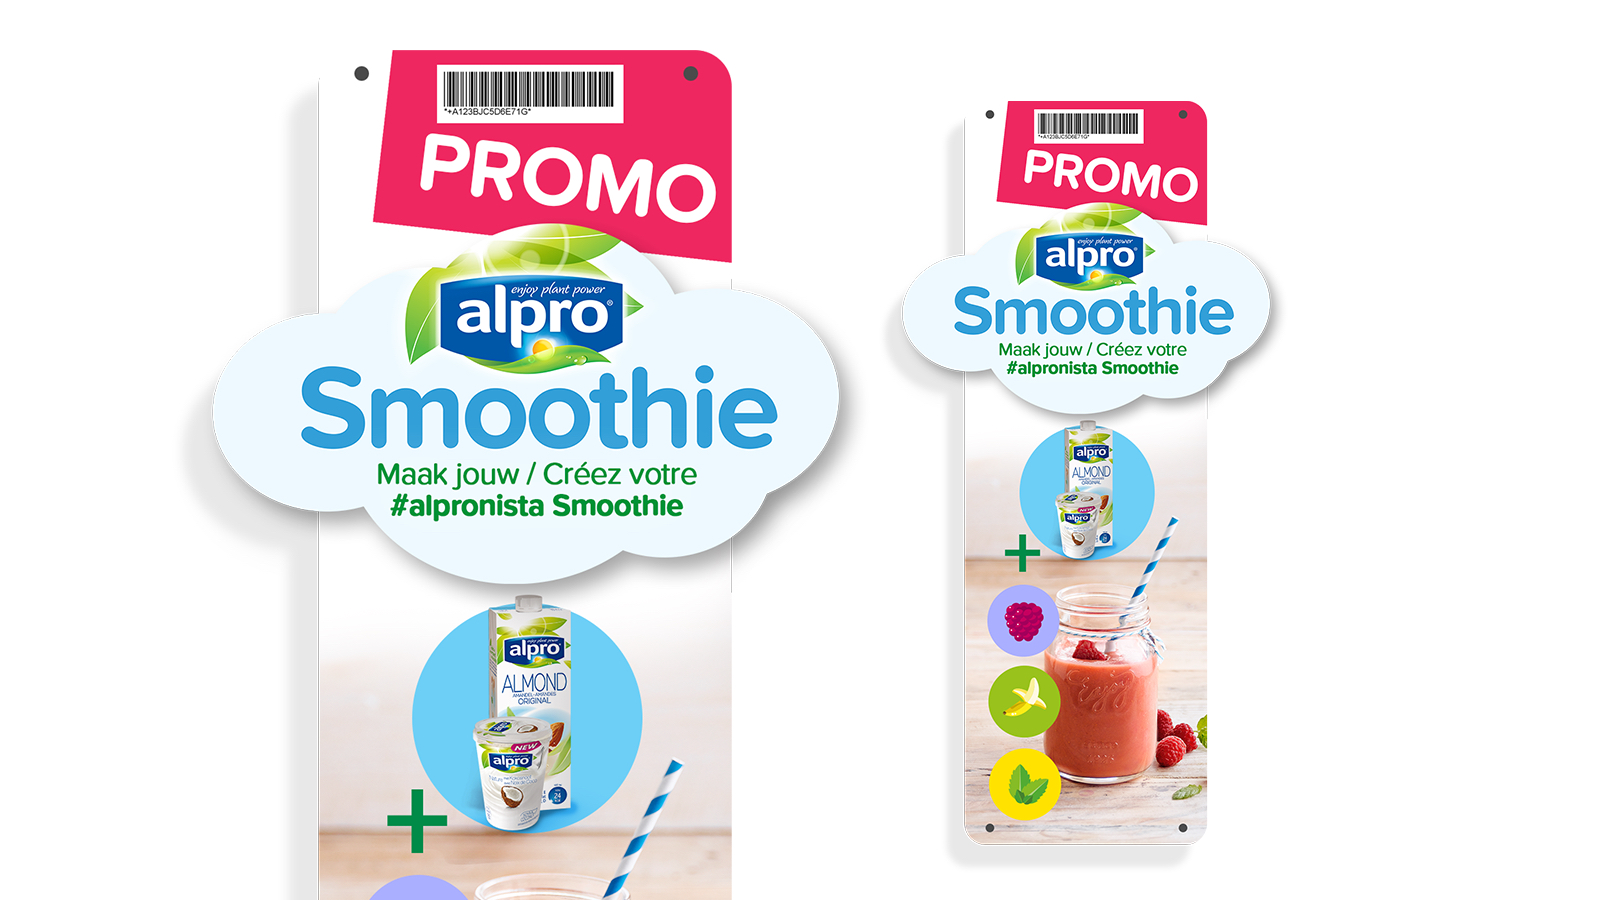 ALPRO-Smoothie-Shelf Banner.jpg